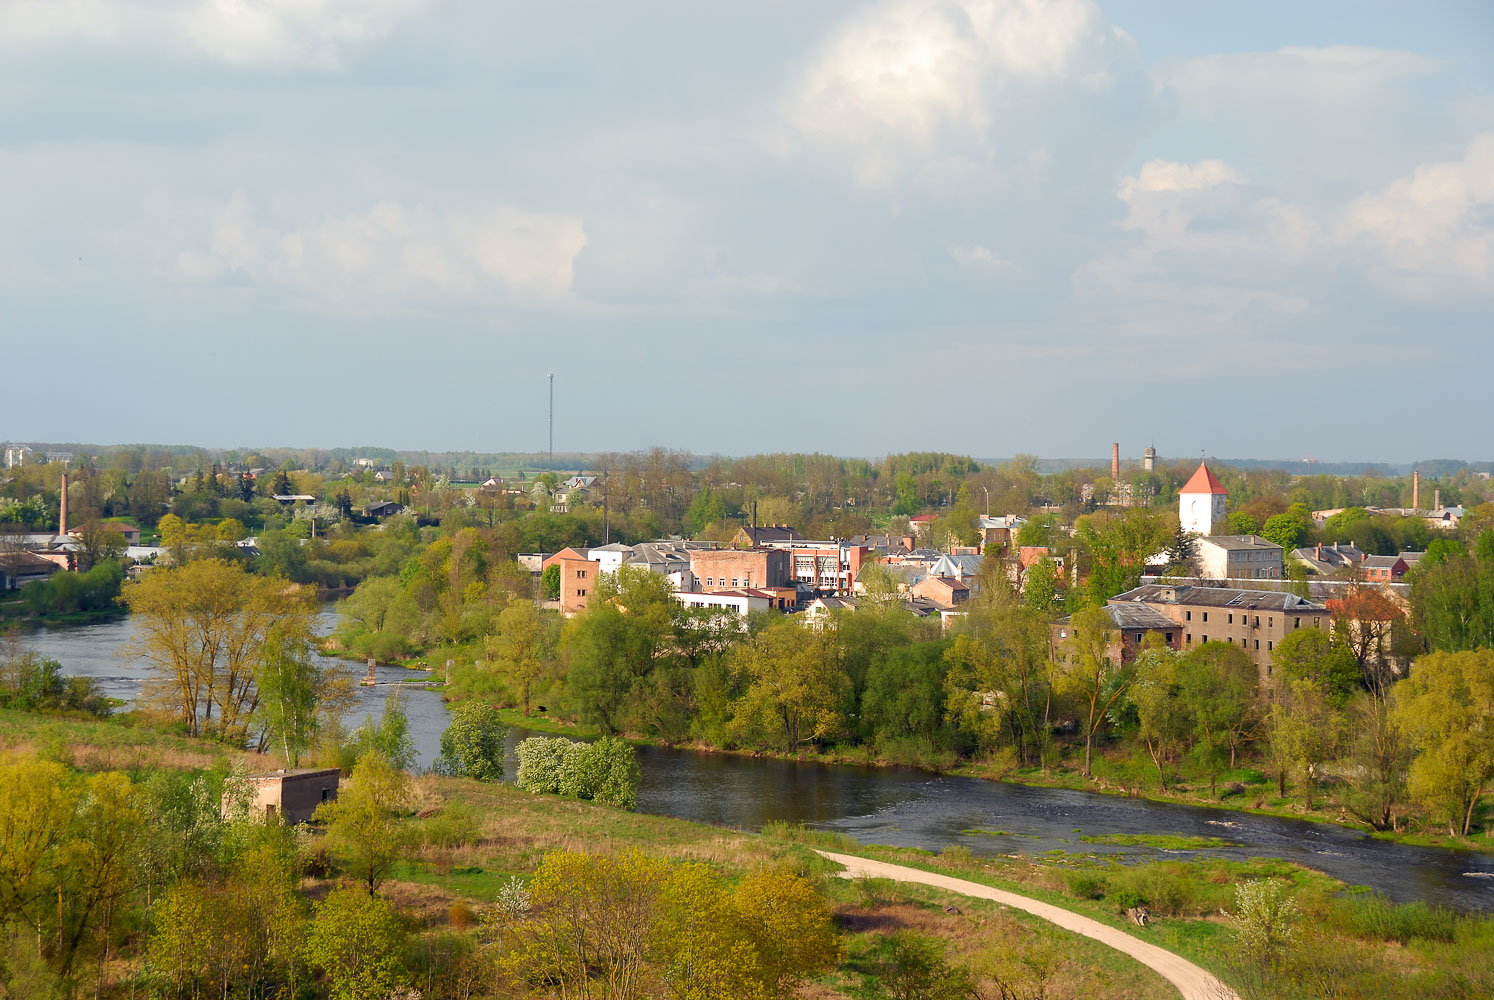 LE080391-Bauska---cityview-from-the-old-castle.jpg